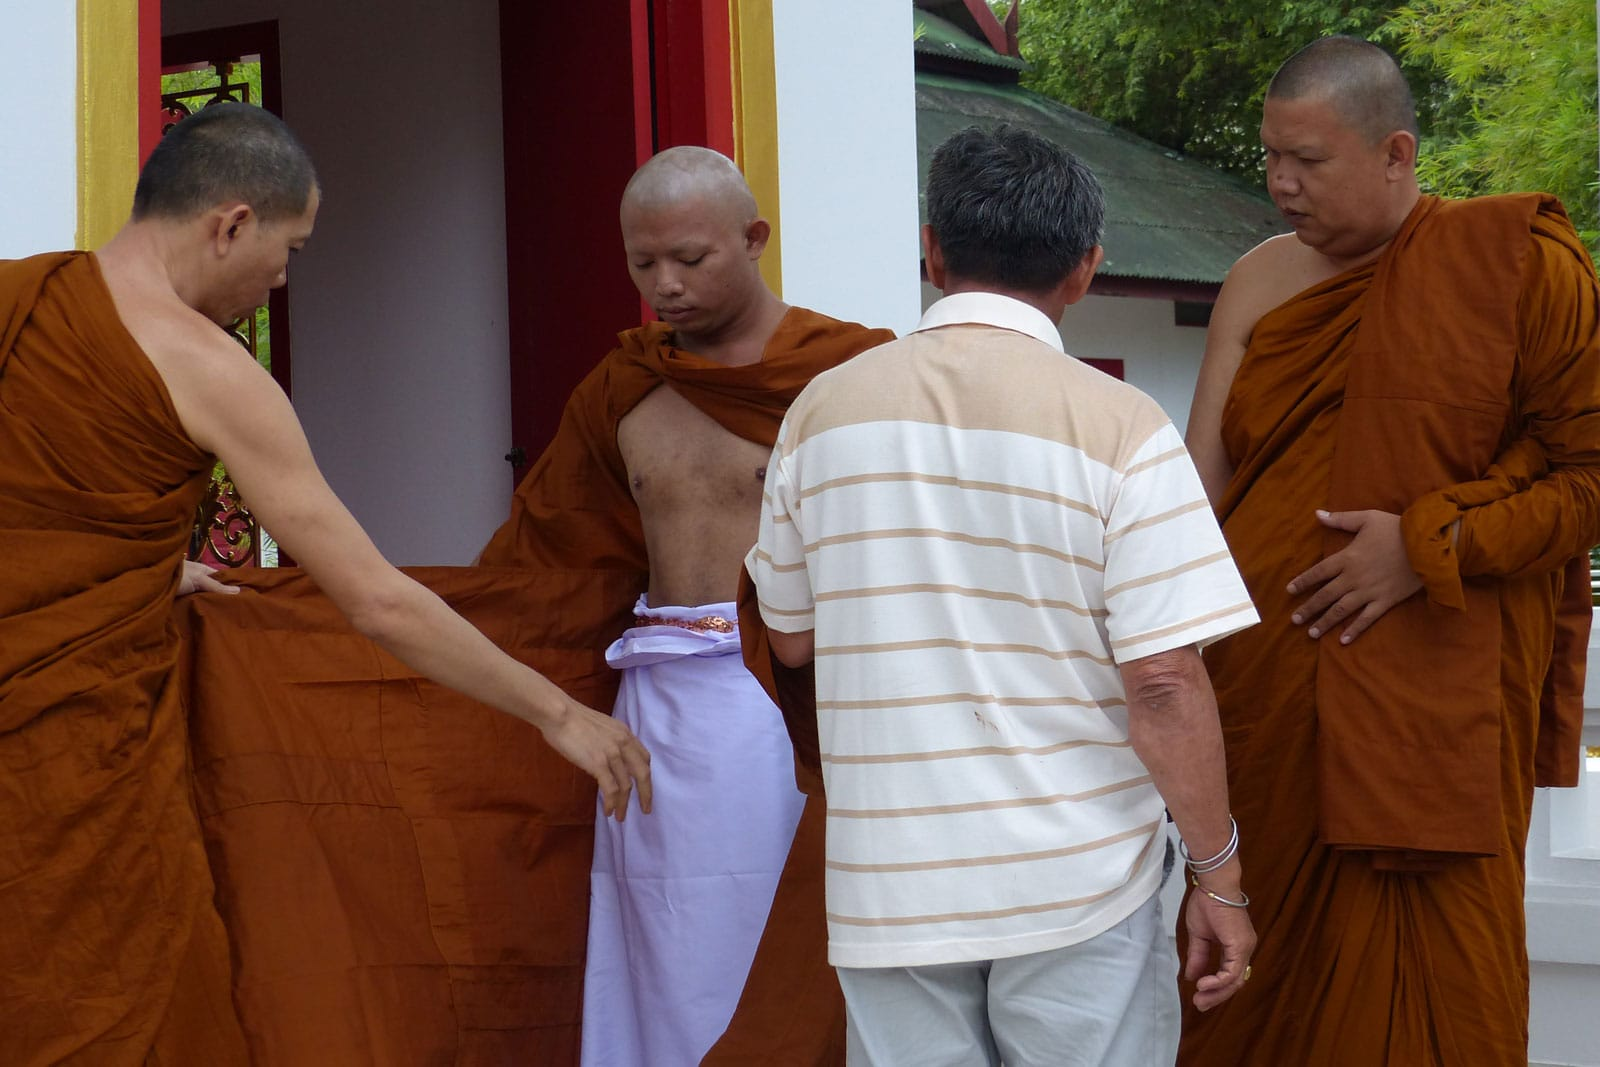 to the Buddhist monk orange clothes